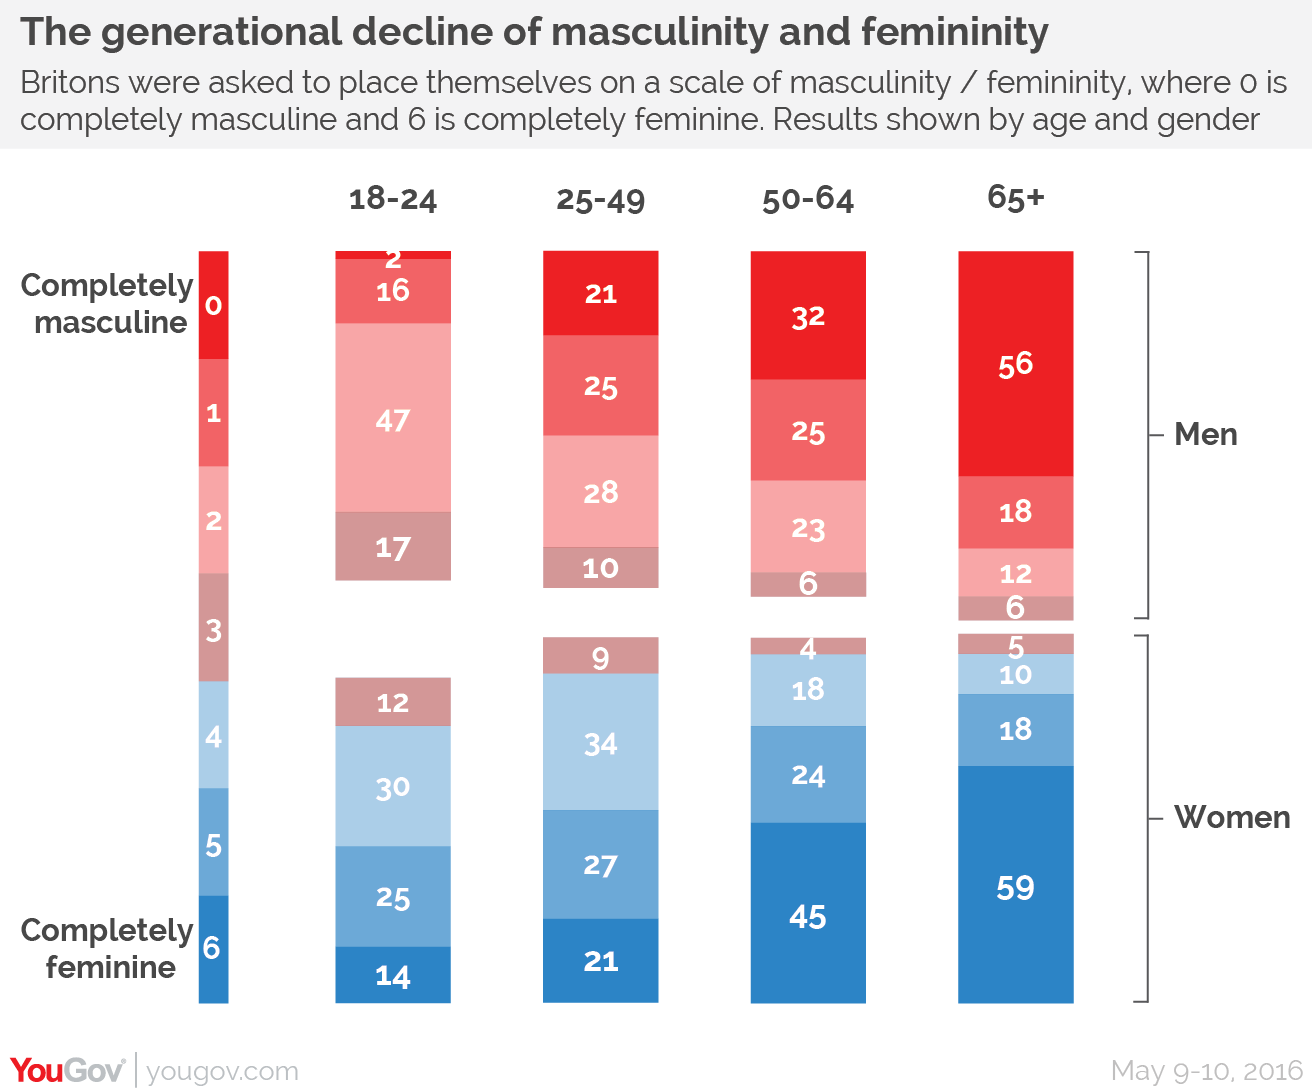 Only 2% of young men feel completely masculine (compared to 56% of